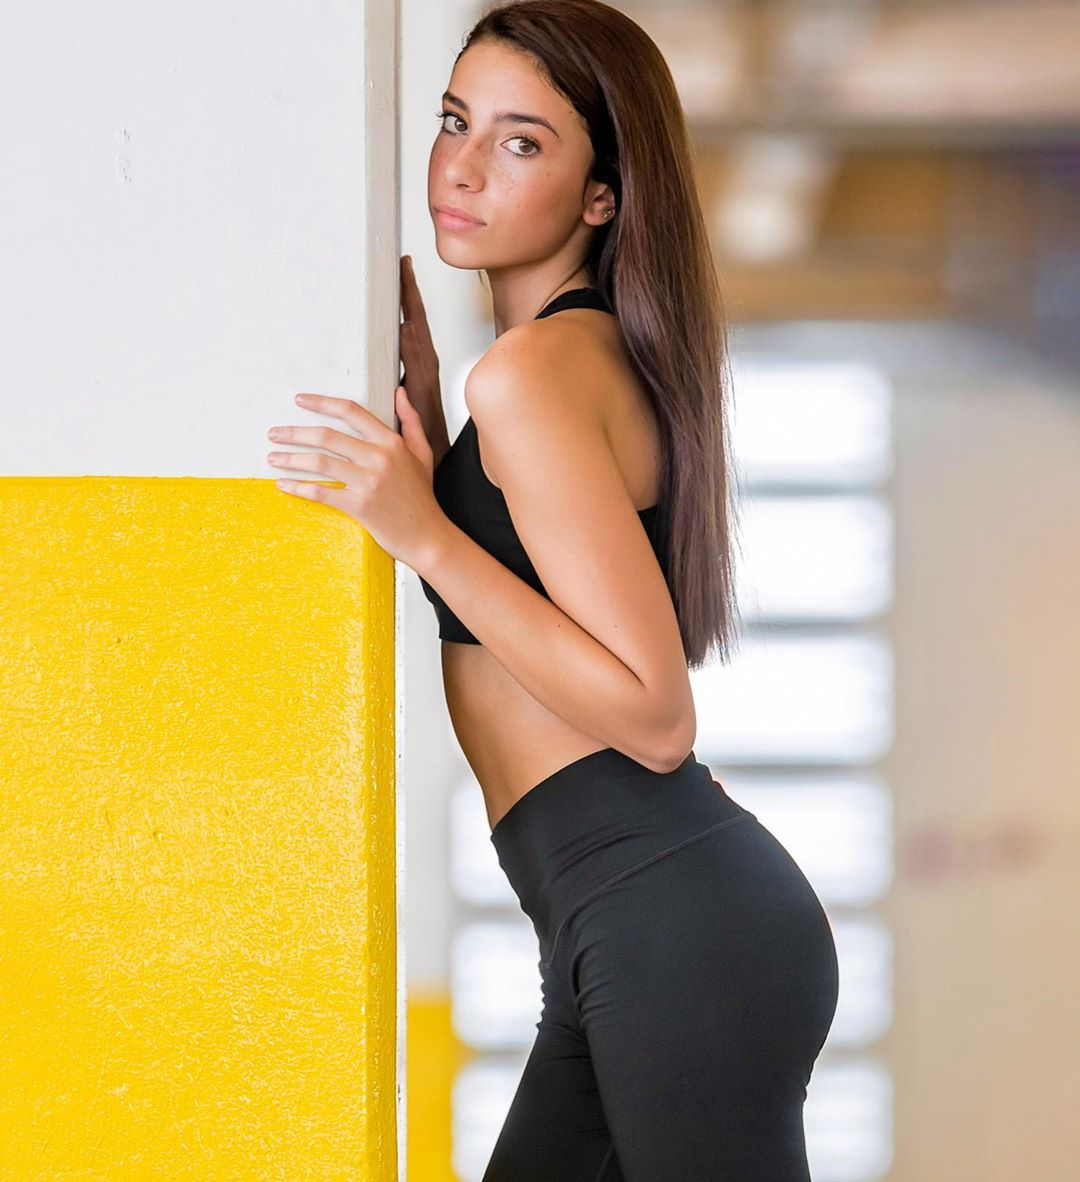 Gianna-Marie-Magliano-Wallpapers-Insta-Fit-Bio-8